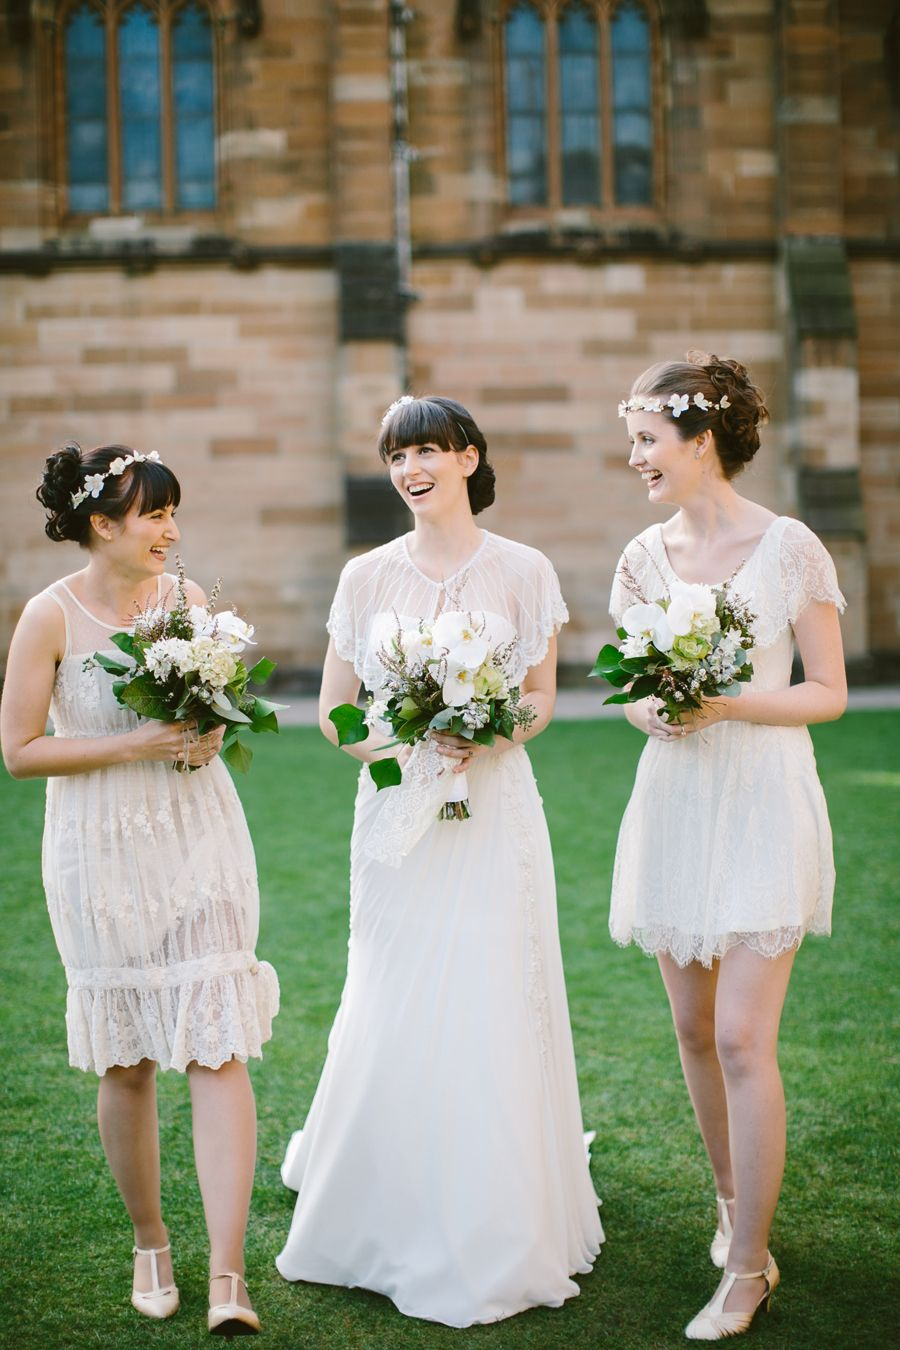 This wedding looks sooo cute tabitha patterson amazing wedding dress ombrellifo Choice Image